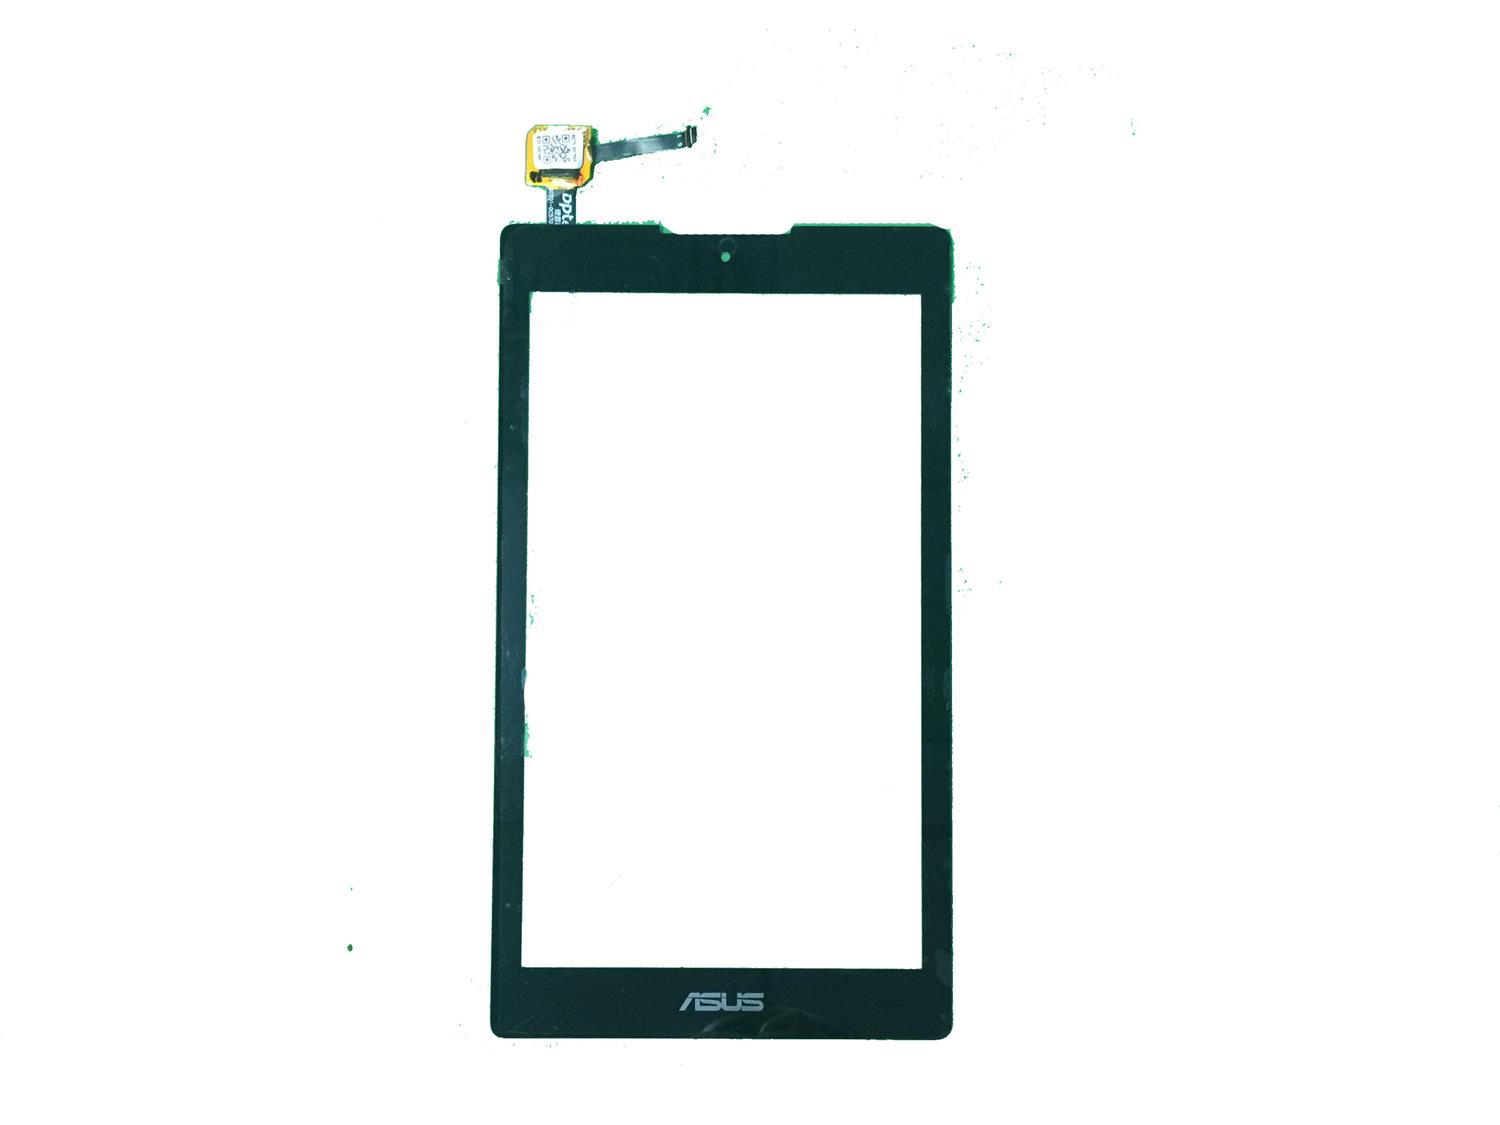 Asus Original Touch Screen Digitizer Glass Lens Panel replacement parts For ASUS ZenPad C 7.0 Z170MG Z170 MG tablet Touch panel цены